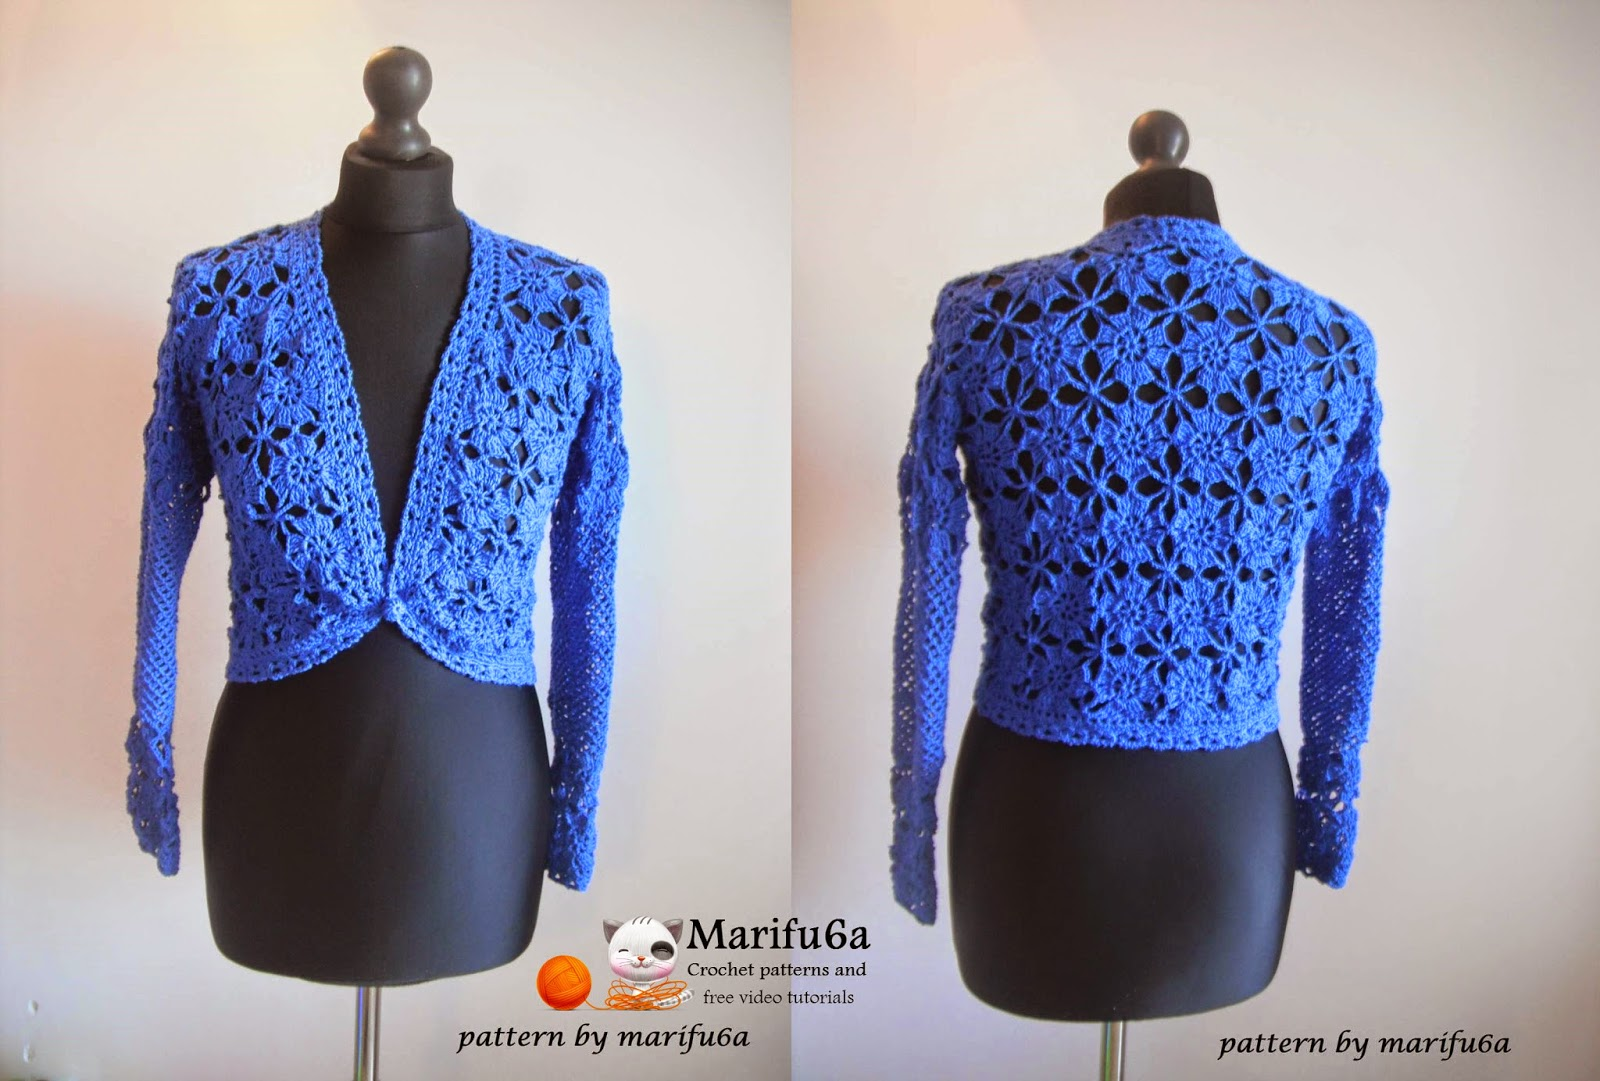 crochet patterns and video tutorials: how to crochet elegant jacket ...